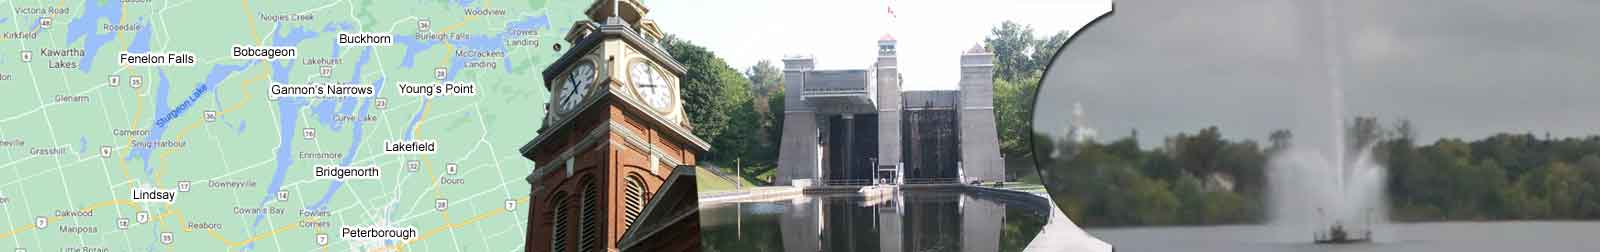 Peterborough Ontario's Hydraulic Lift Lock, Trent-Severn Waterway lock 21, start of the kawartha lakes as it was.